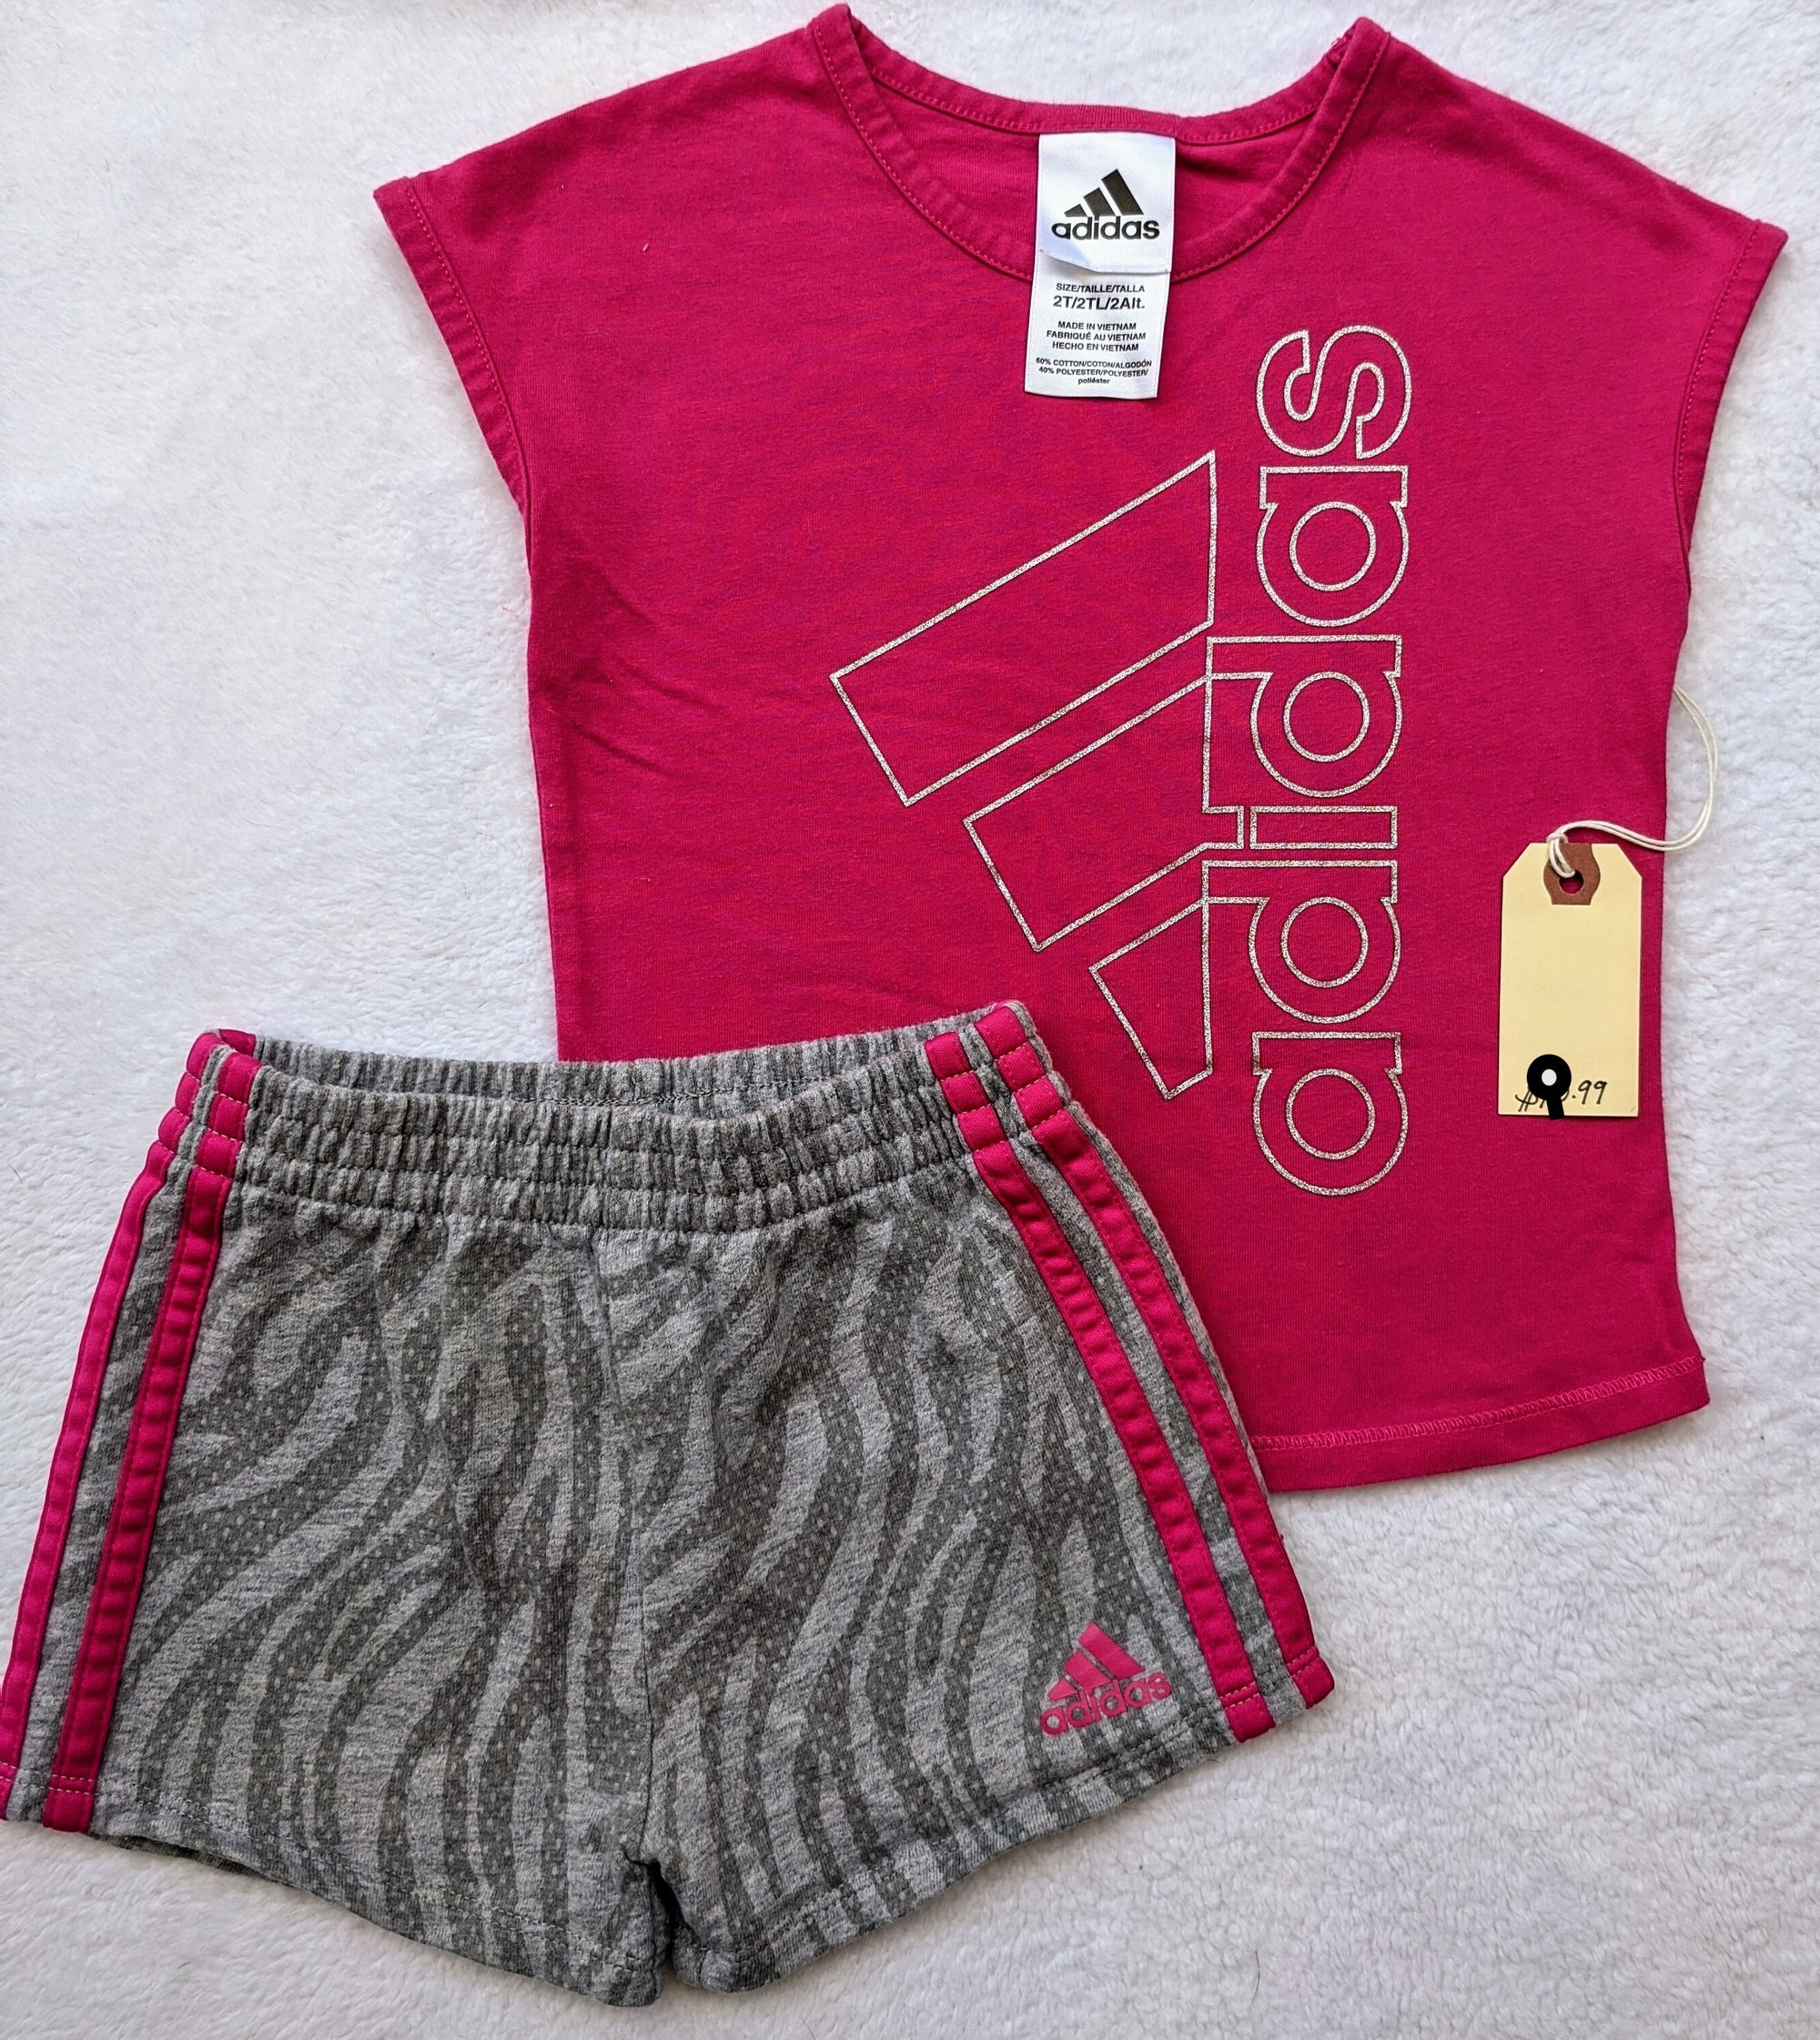 Resale 2T Adidas Pink T-shirt & Shorts